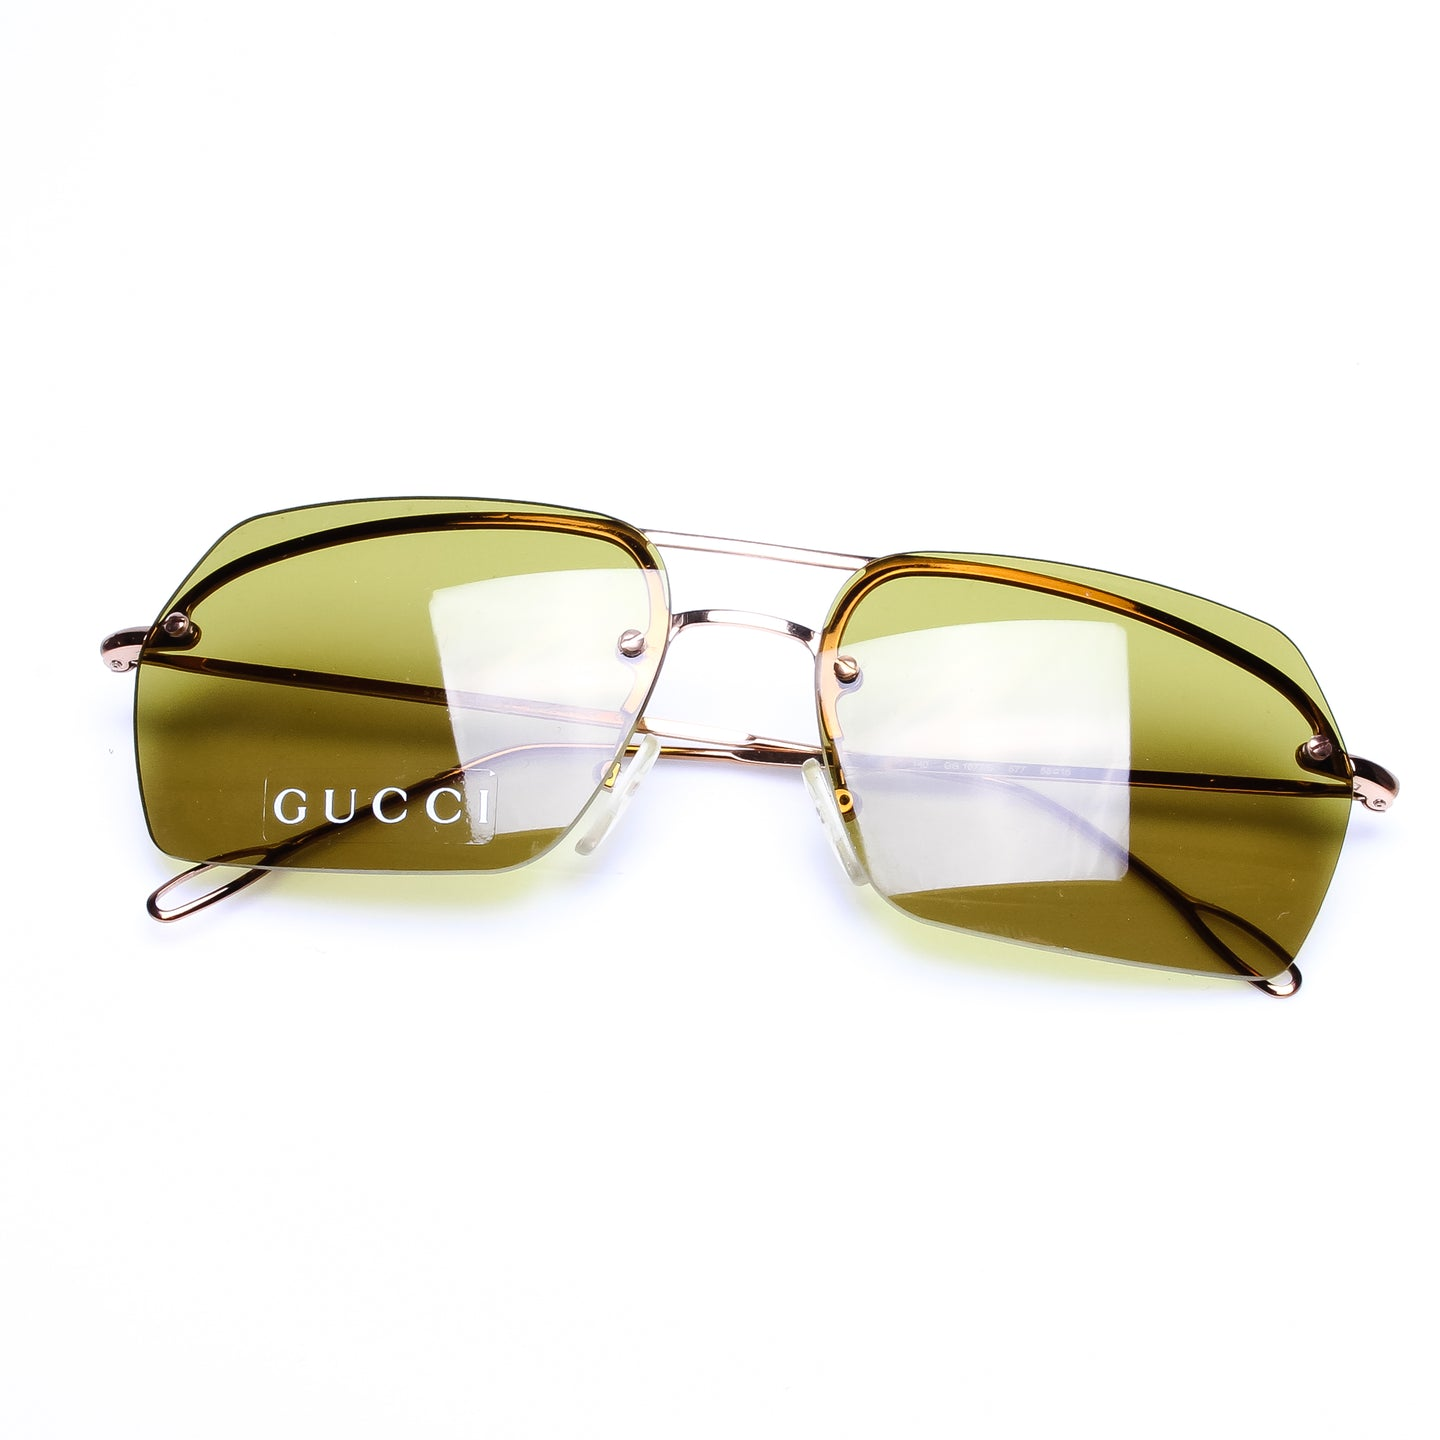 Gucci 1677/S 577, Gucci , glasses frames, eyeglasses online, eyeglass frames, mens glasses, womens glasses, buy glasses online, designer eyeglasses, vintage sunglasses, retro sunglasses, vintage glasses, sunglass, eyeglass, glasses, lens, vintage frames company, vf